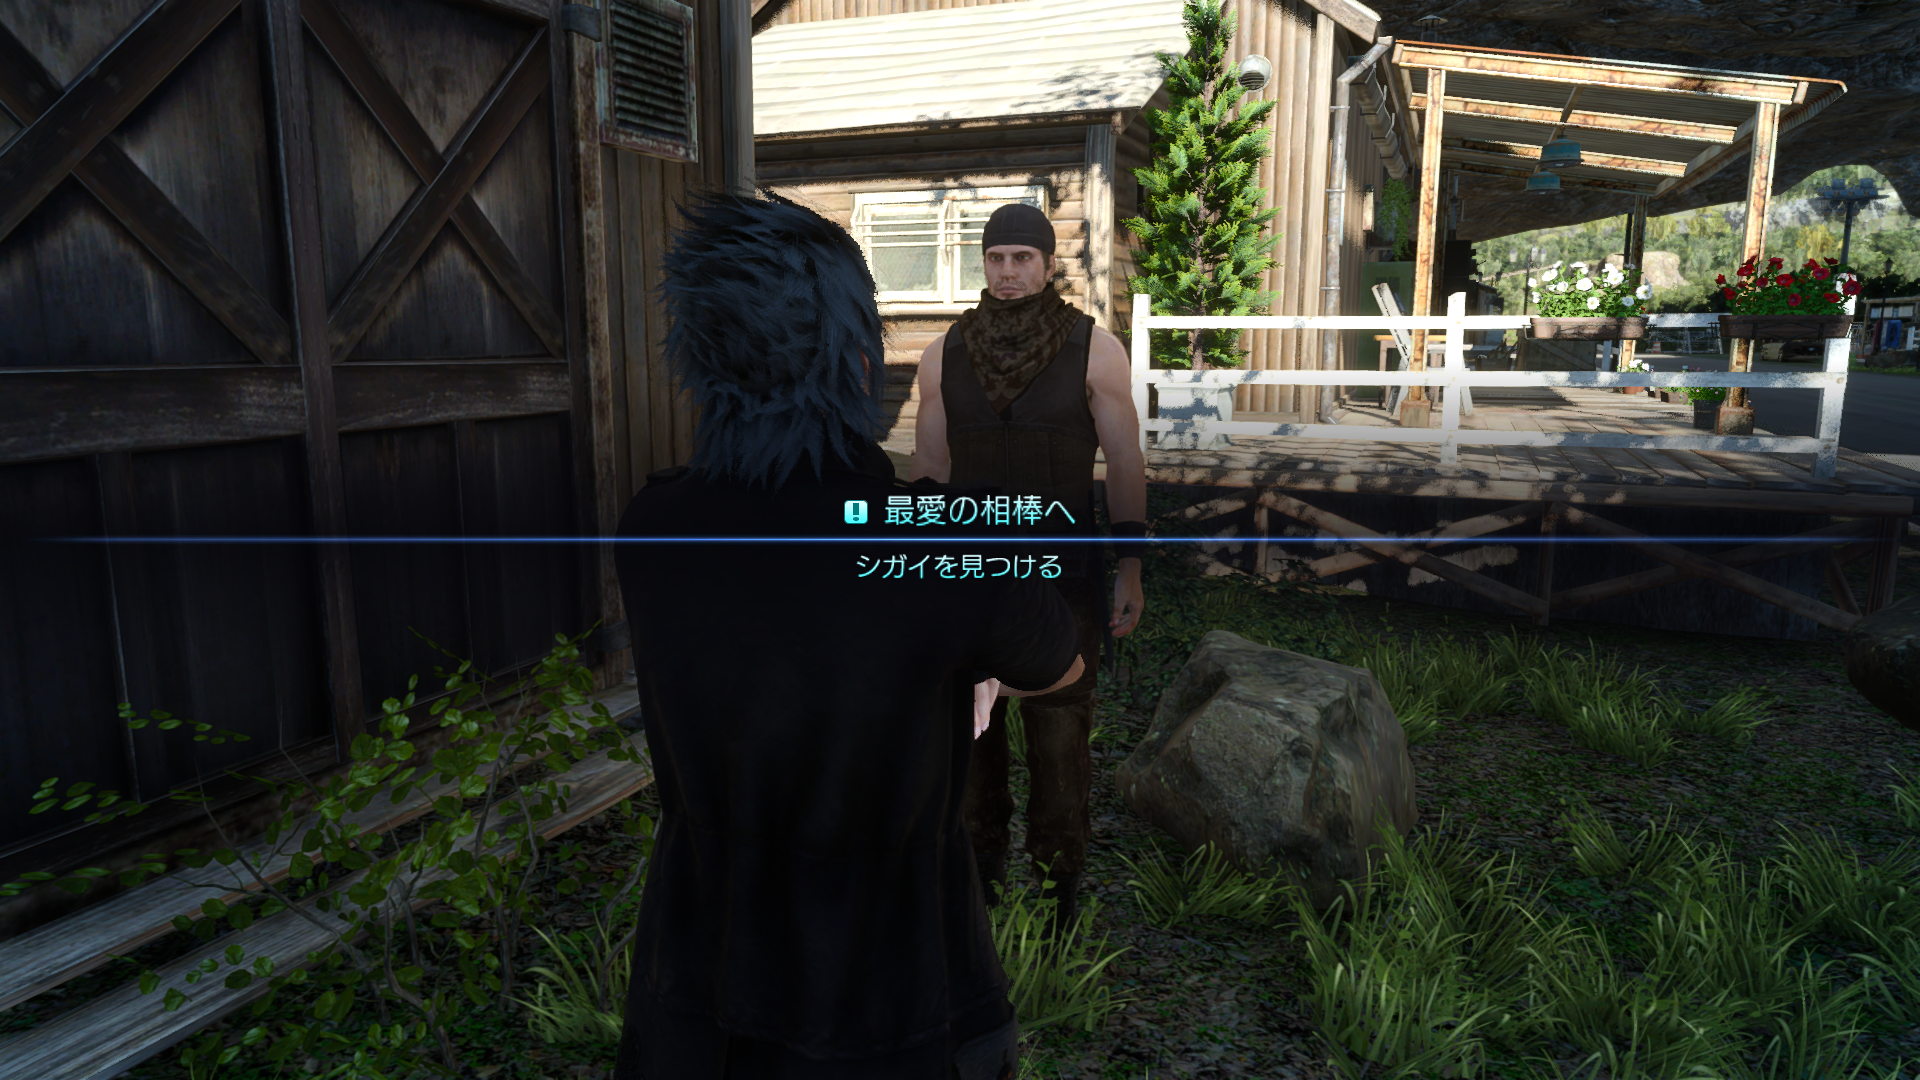 http://www.finalfantasy.jp/ff15/c1ada86a3b5b010942b4a23910a0a3bcbc15df62.png